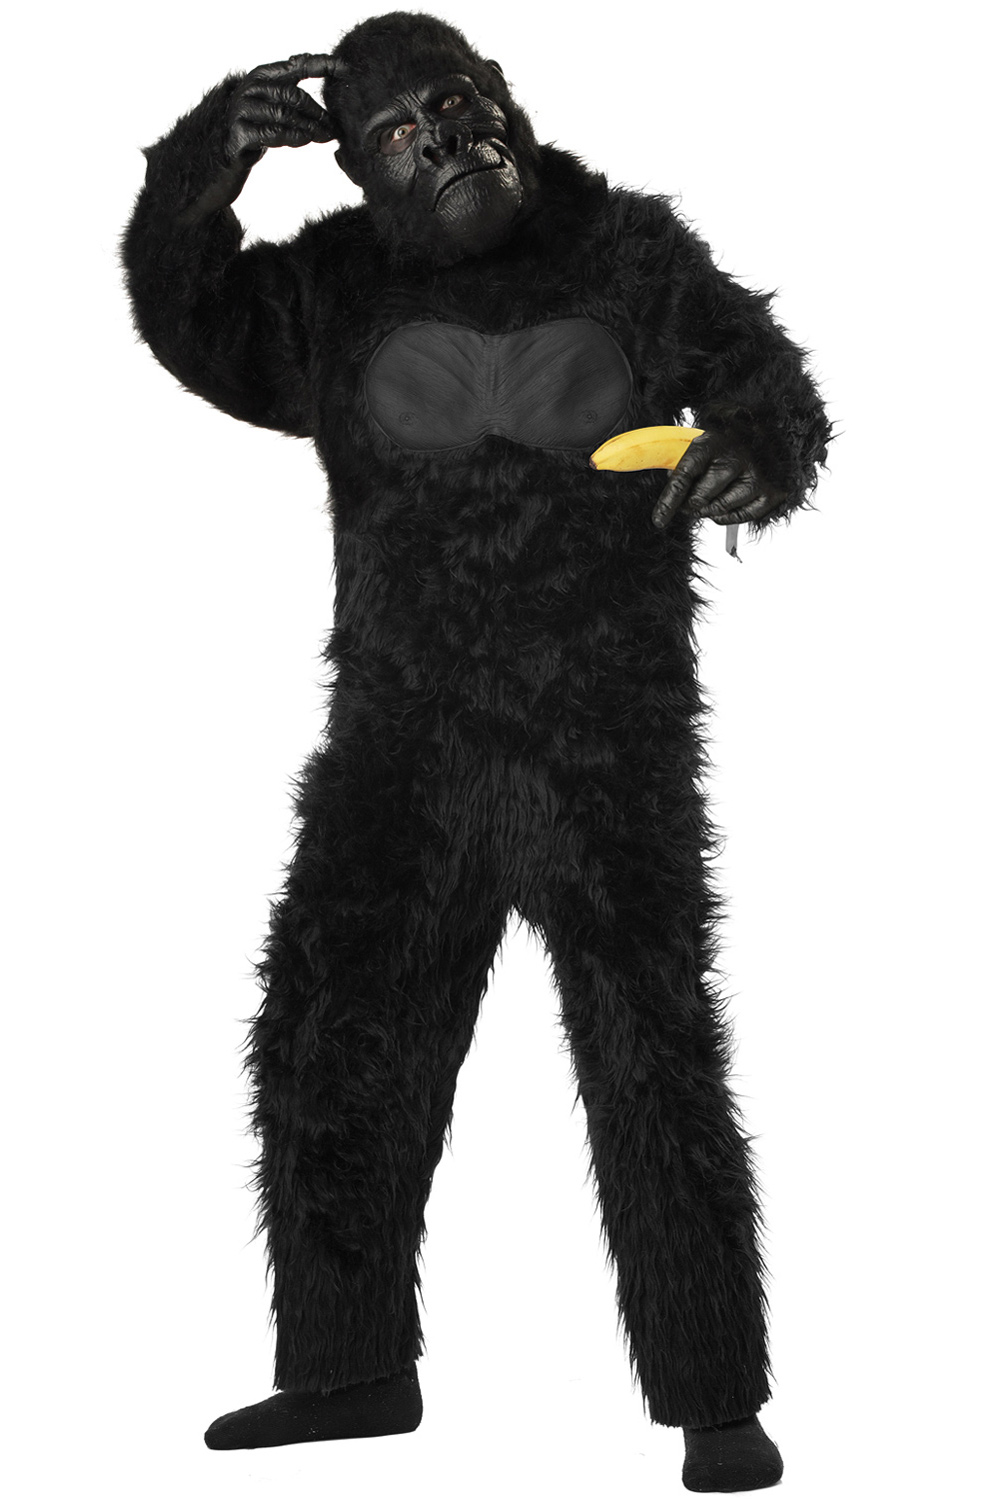 how to make a gorilla costume